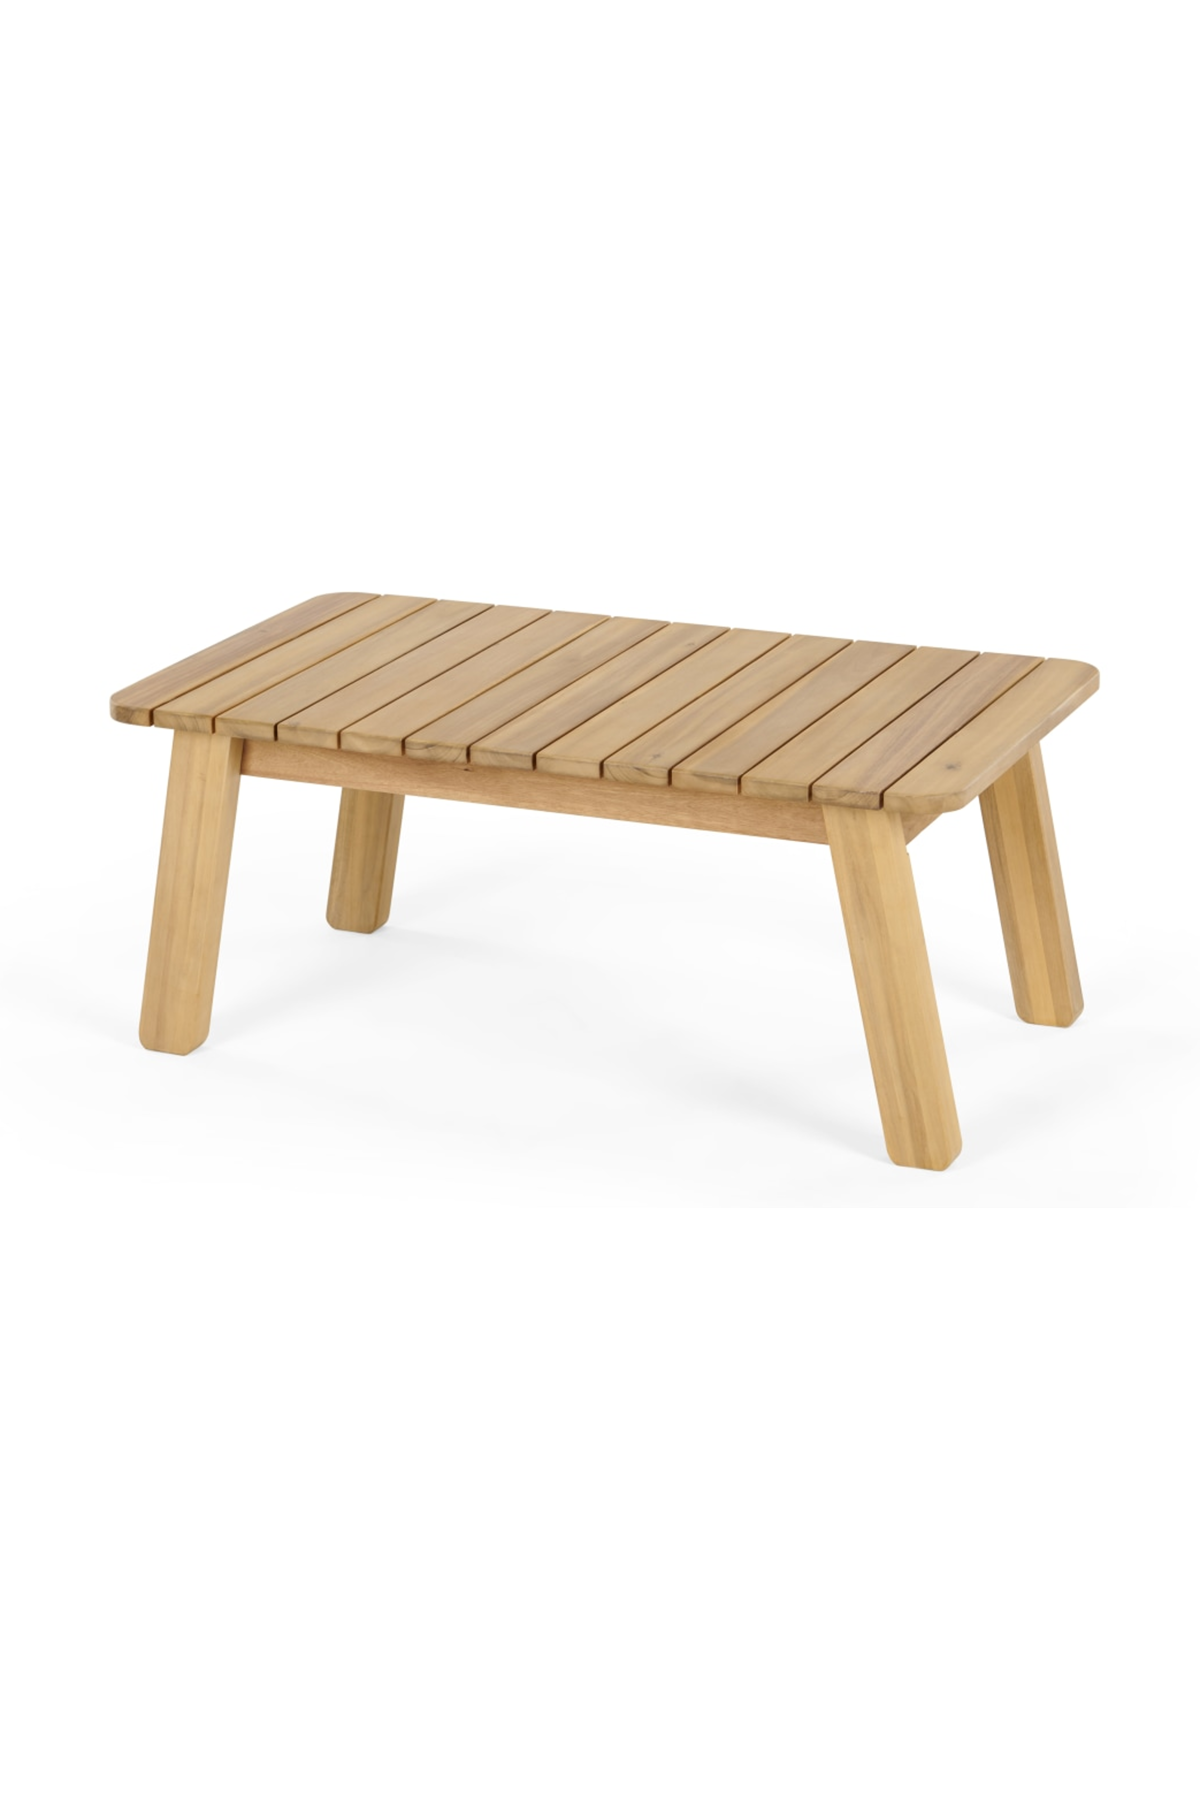 Jala Garden Coffee Table Acacia Wood Garden Coffee Table